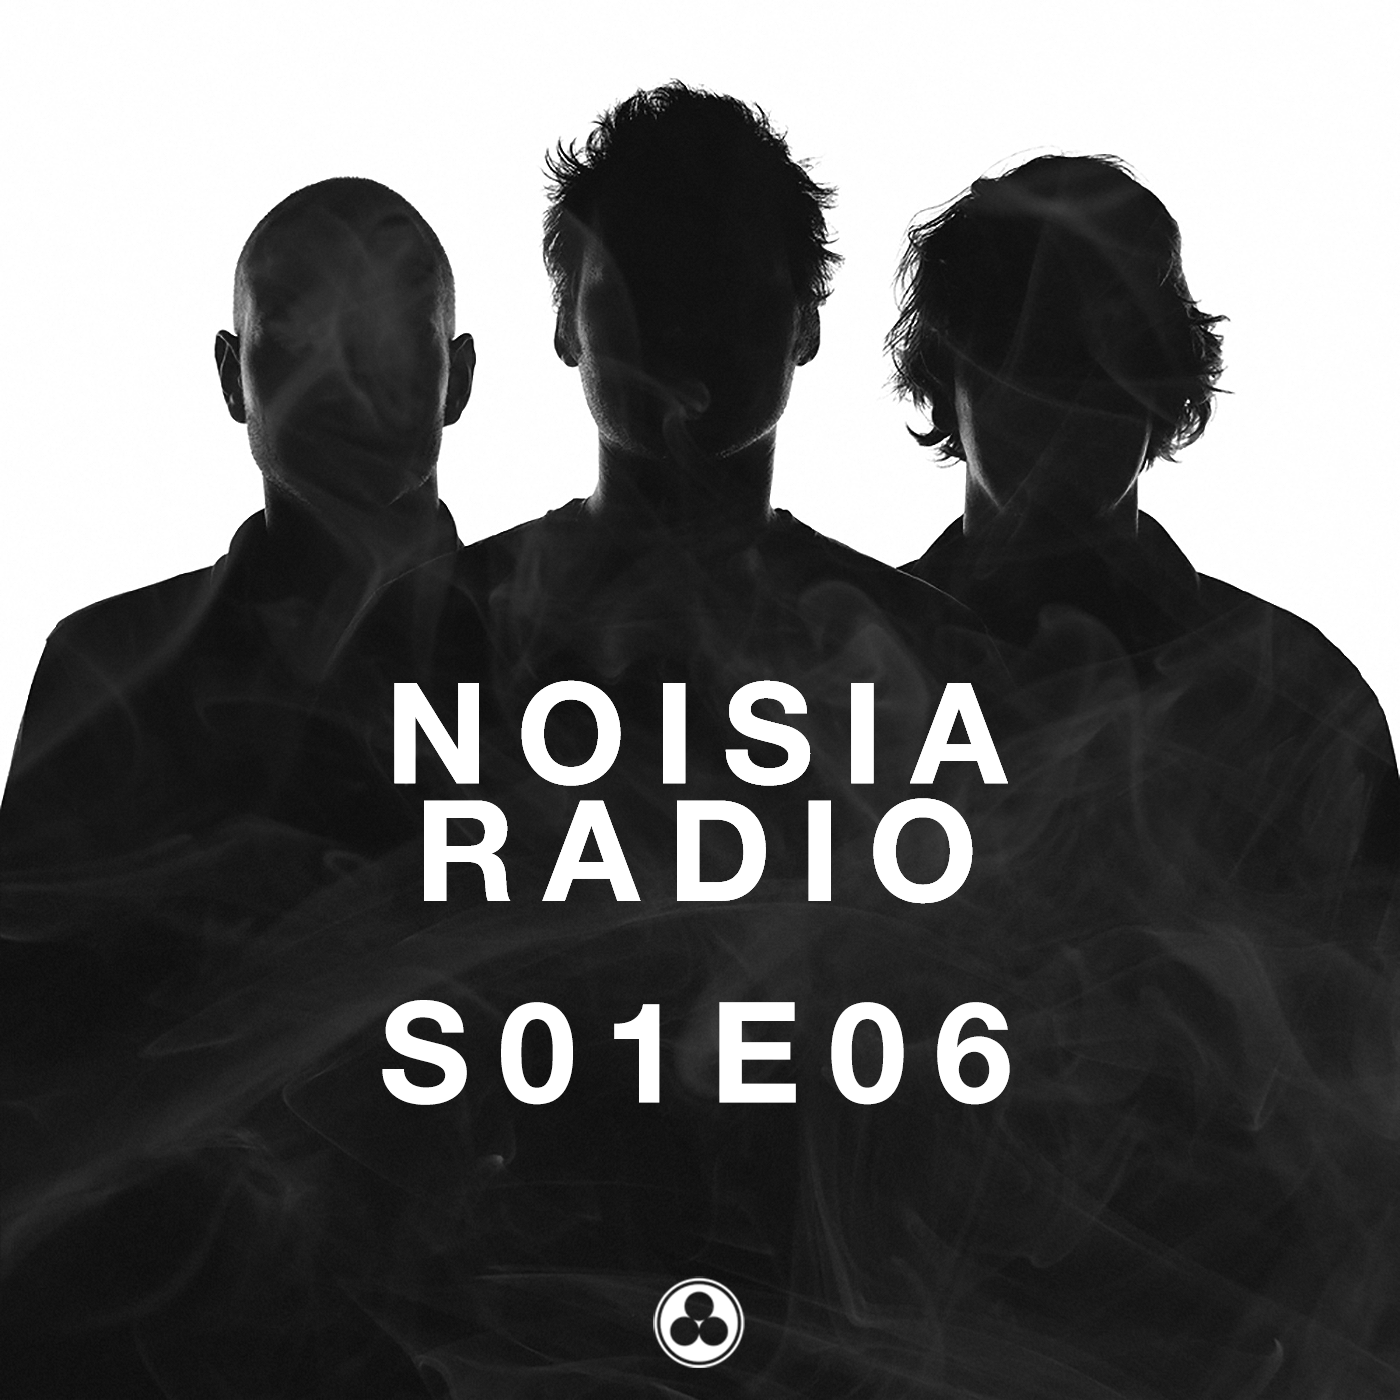 Noisia Radio S01E06